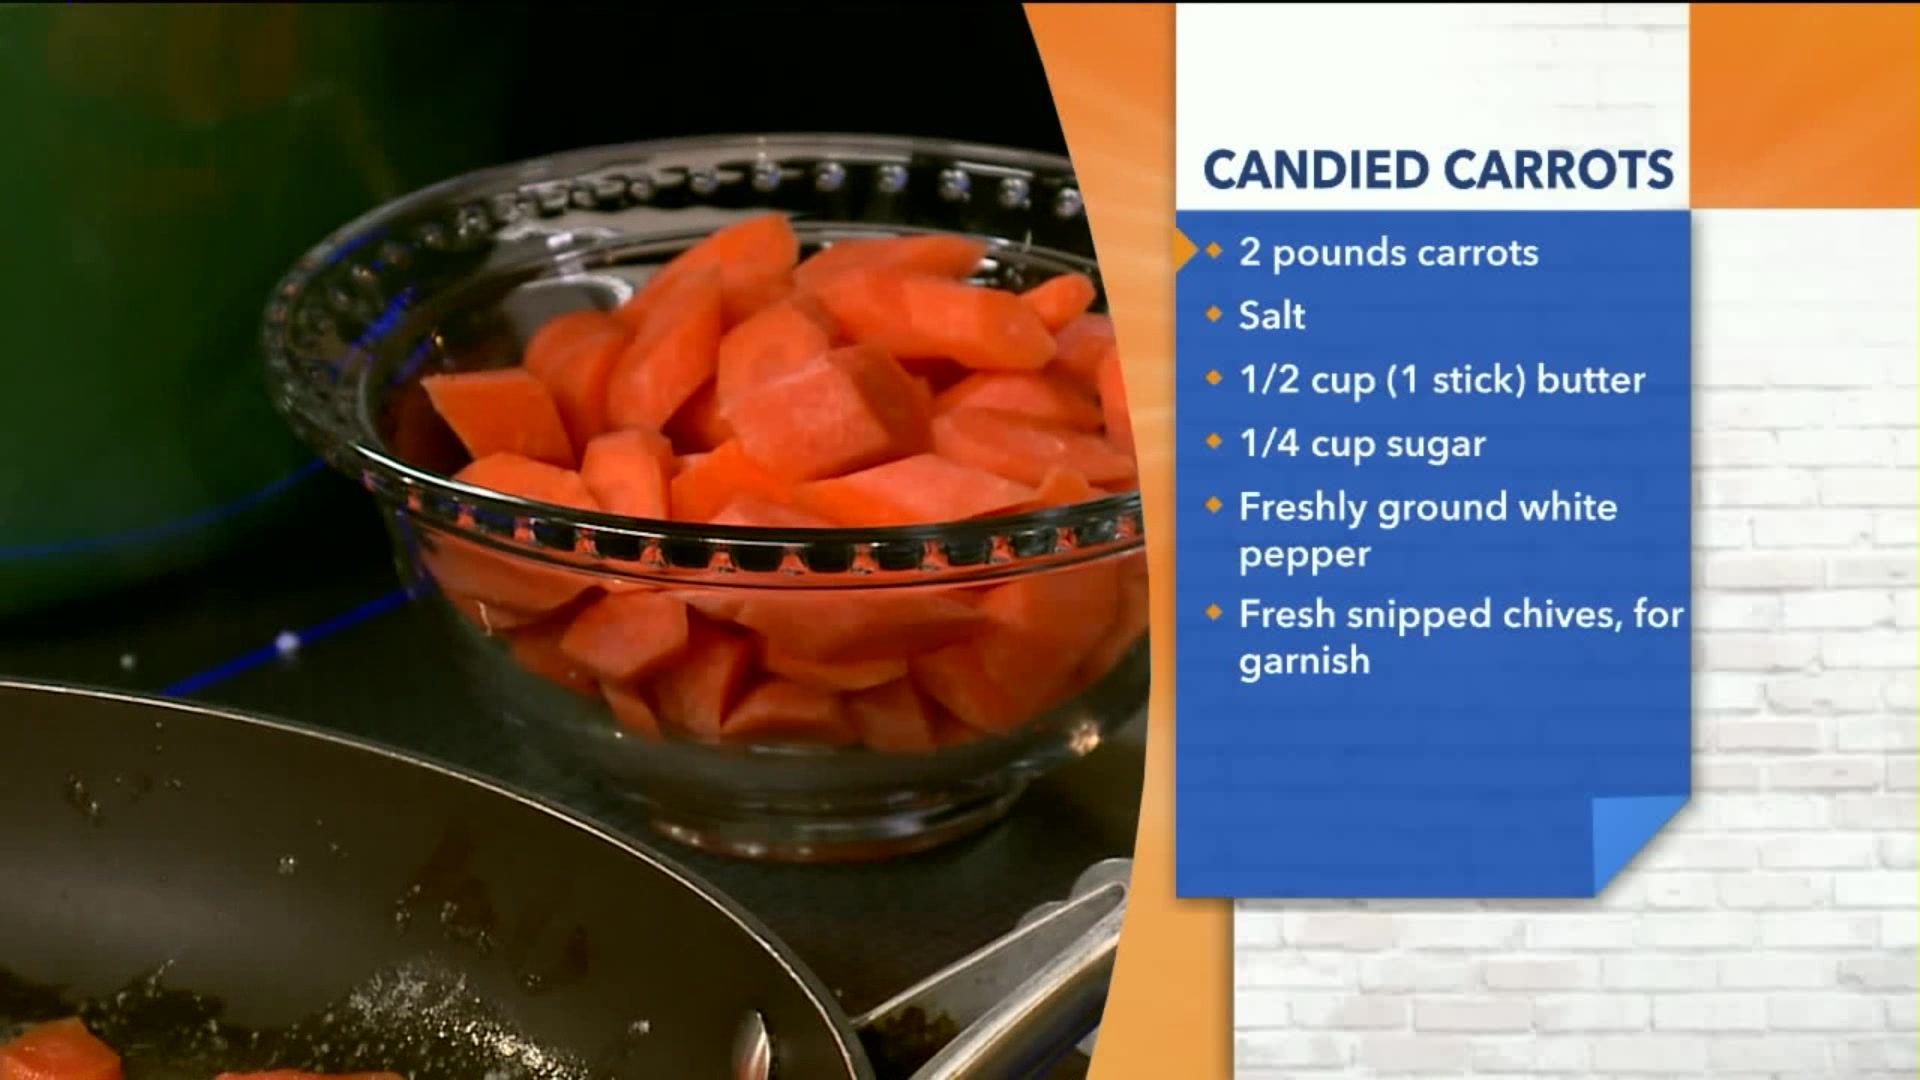 How to Make Candied Carrots